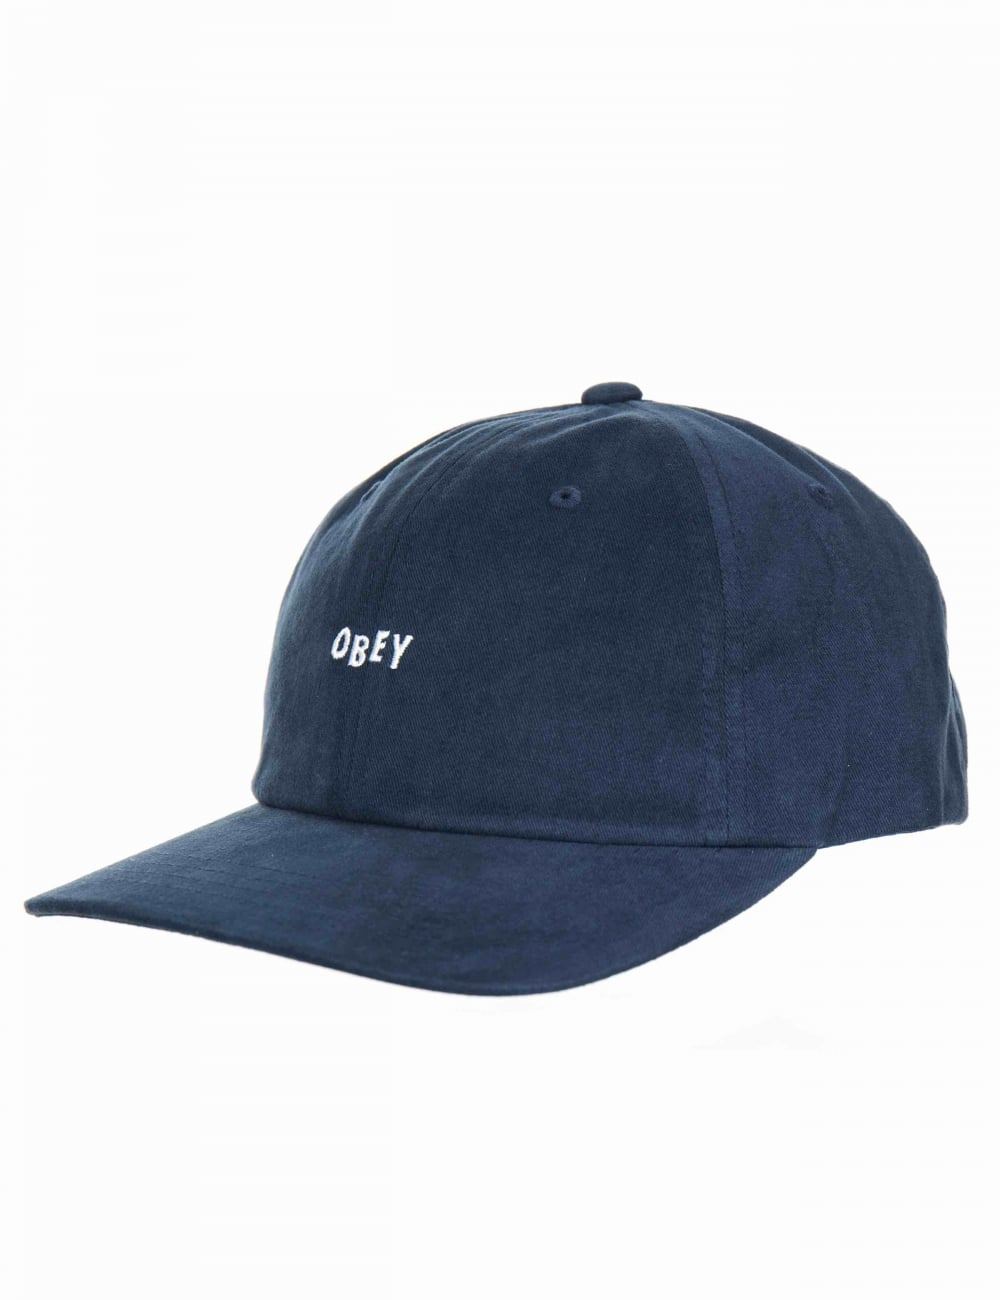 9d6771e5da92a Obey Clothing Jumble Bar III 6 Panel Hat - Navy - Hat Shop from Fat ...